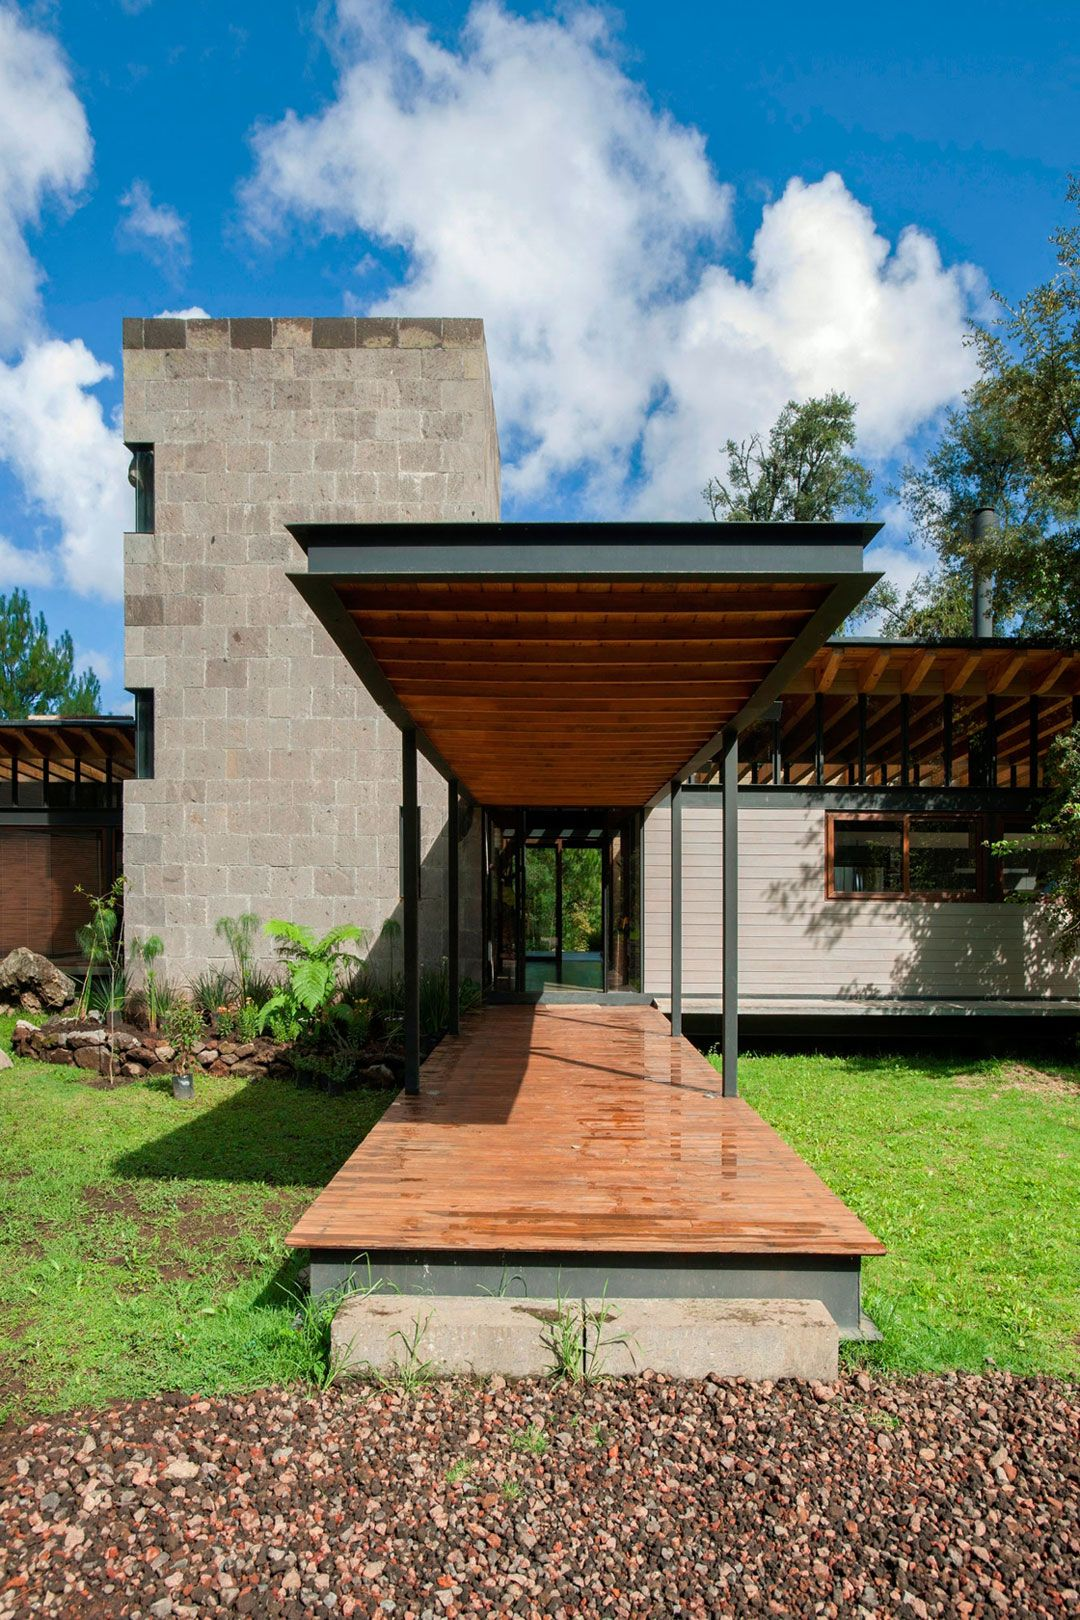 Picturesque Home Lost In The Forest By Alejandro Sanchez Garcia